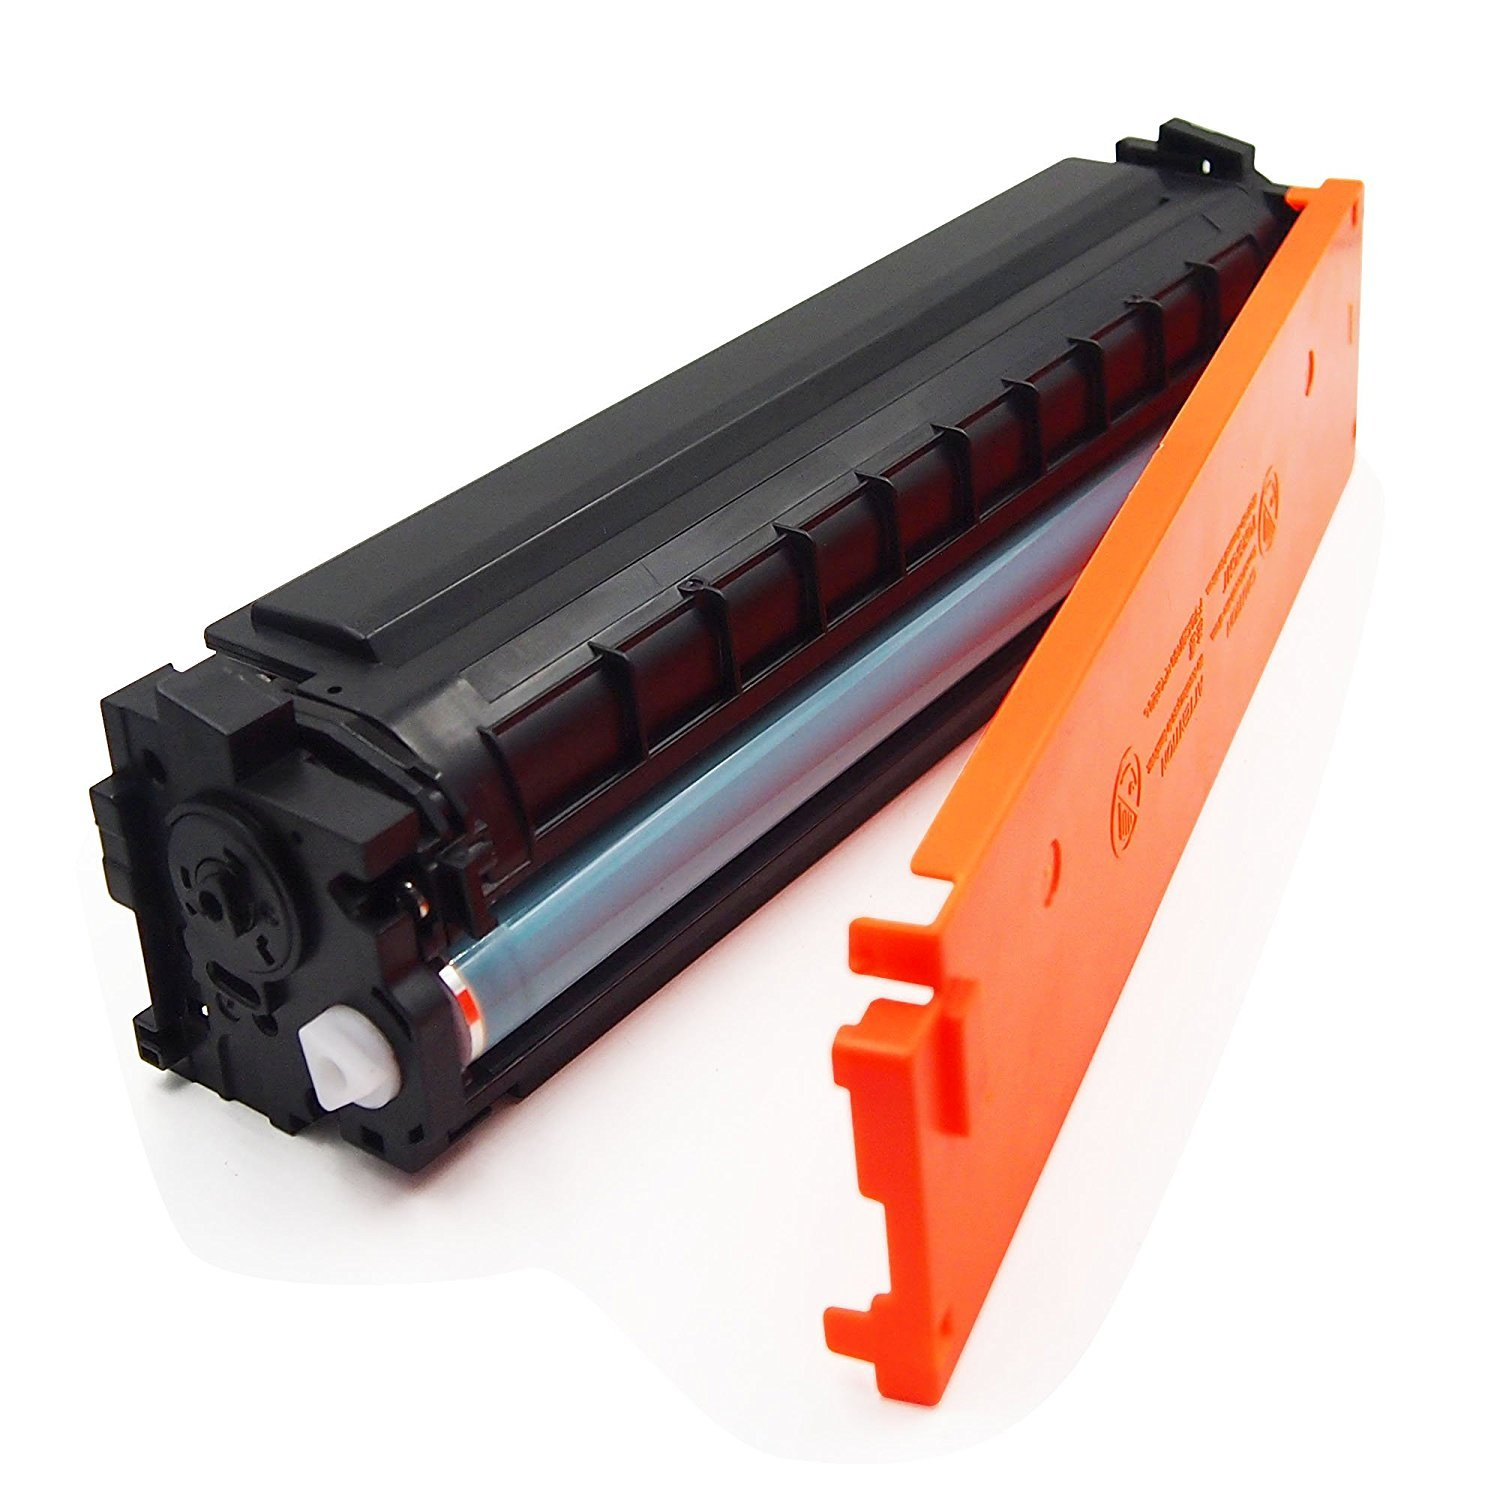 For HP 410A 410X (CF410X CF411X CF412X CF413X)Multipack (4-pack) High Yield Toner Cartridges, Compatible with Color LaserJet Pro MFP M452dn M452dw M452nw M377dw M477fdw M477fnw M477fdn Printer by HaloFox (Image #4)